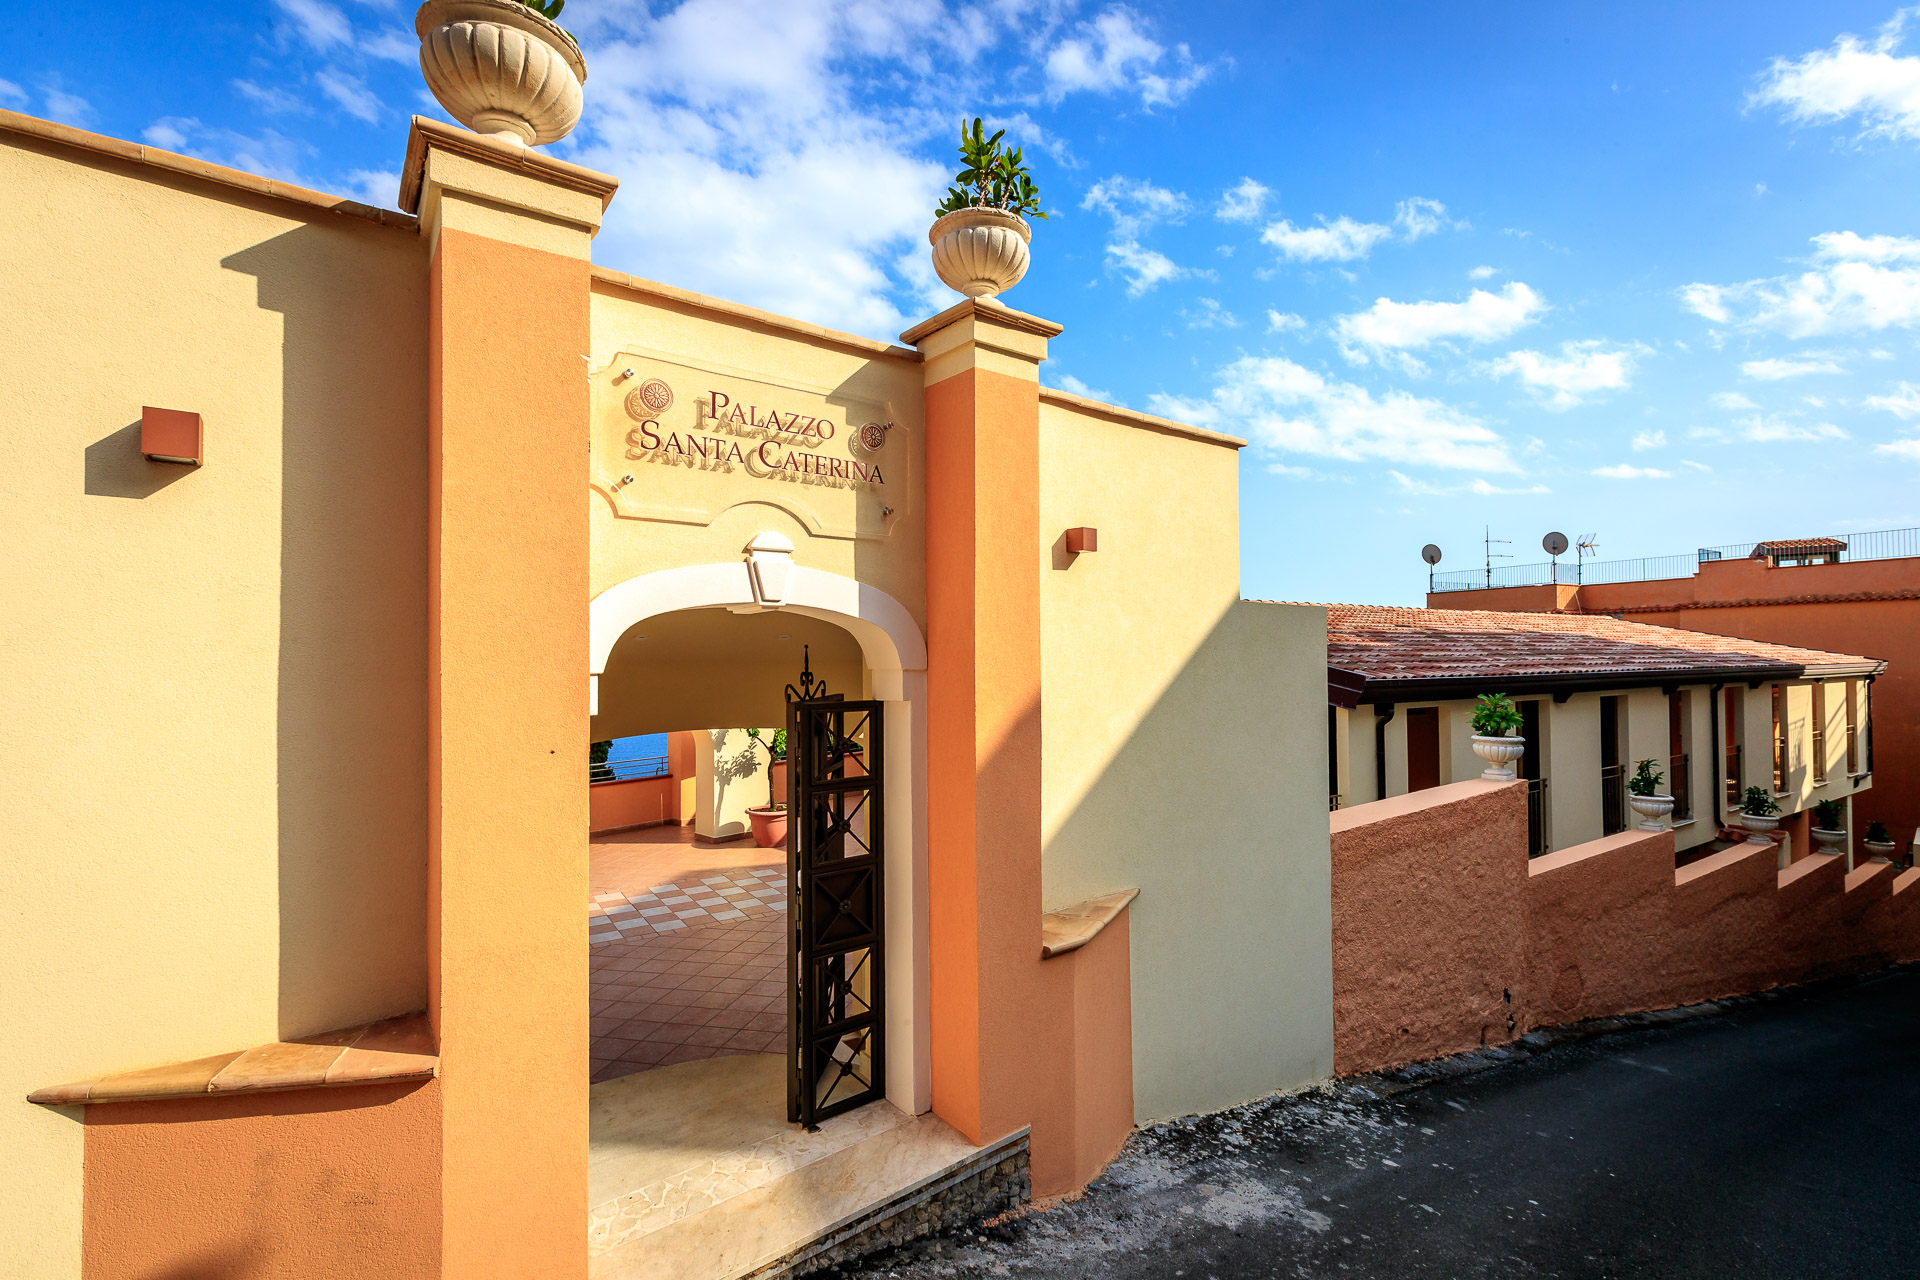 https://www.hotelaristontaormina.it/wp-content/uploads/2020/10/IngressoPalazzoSantaCaterina1.jpg